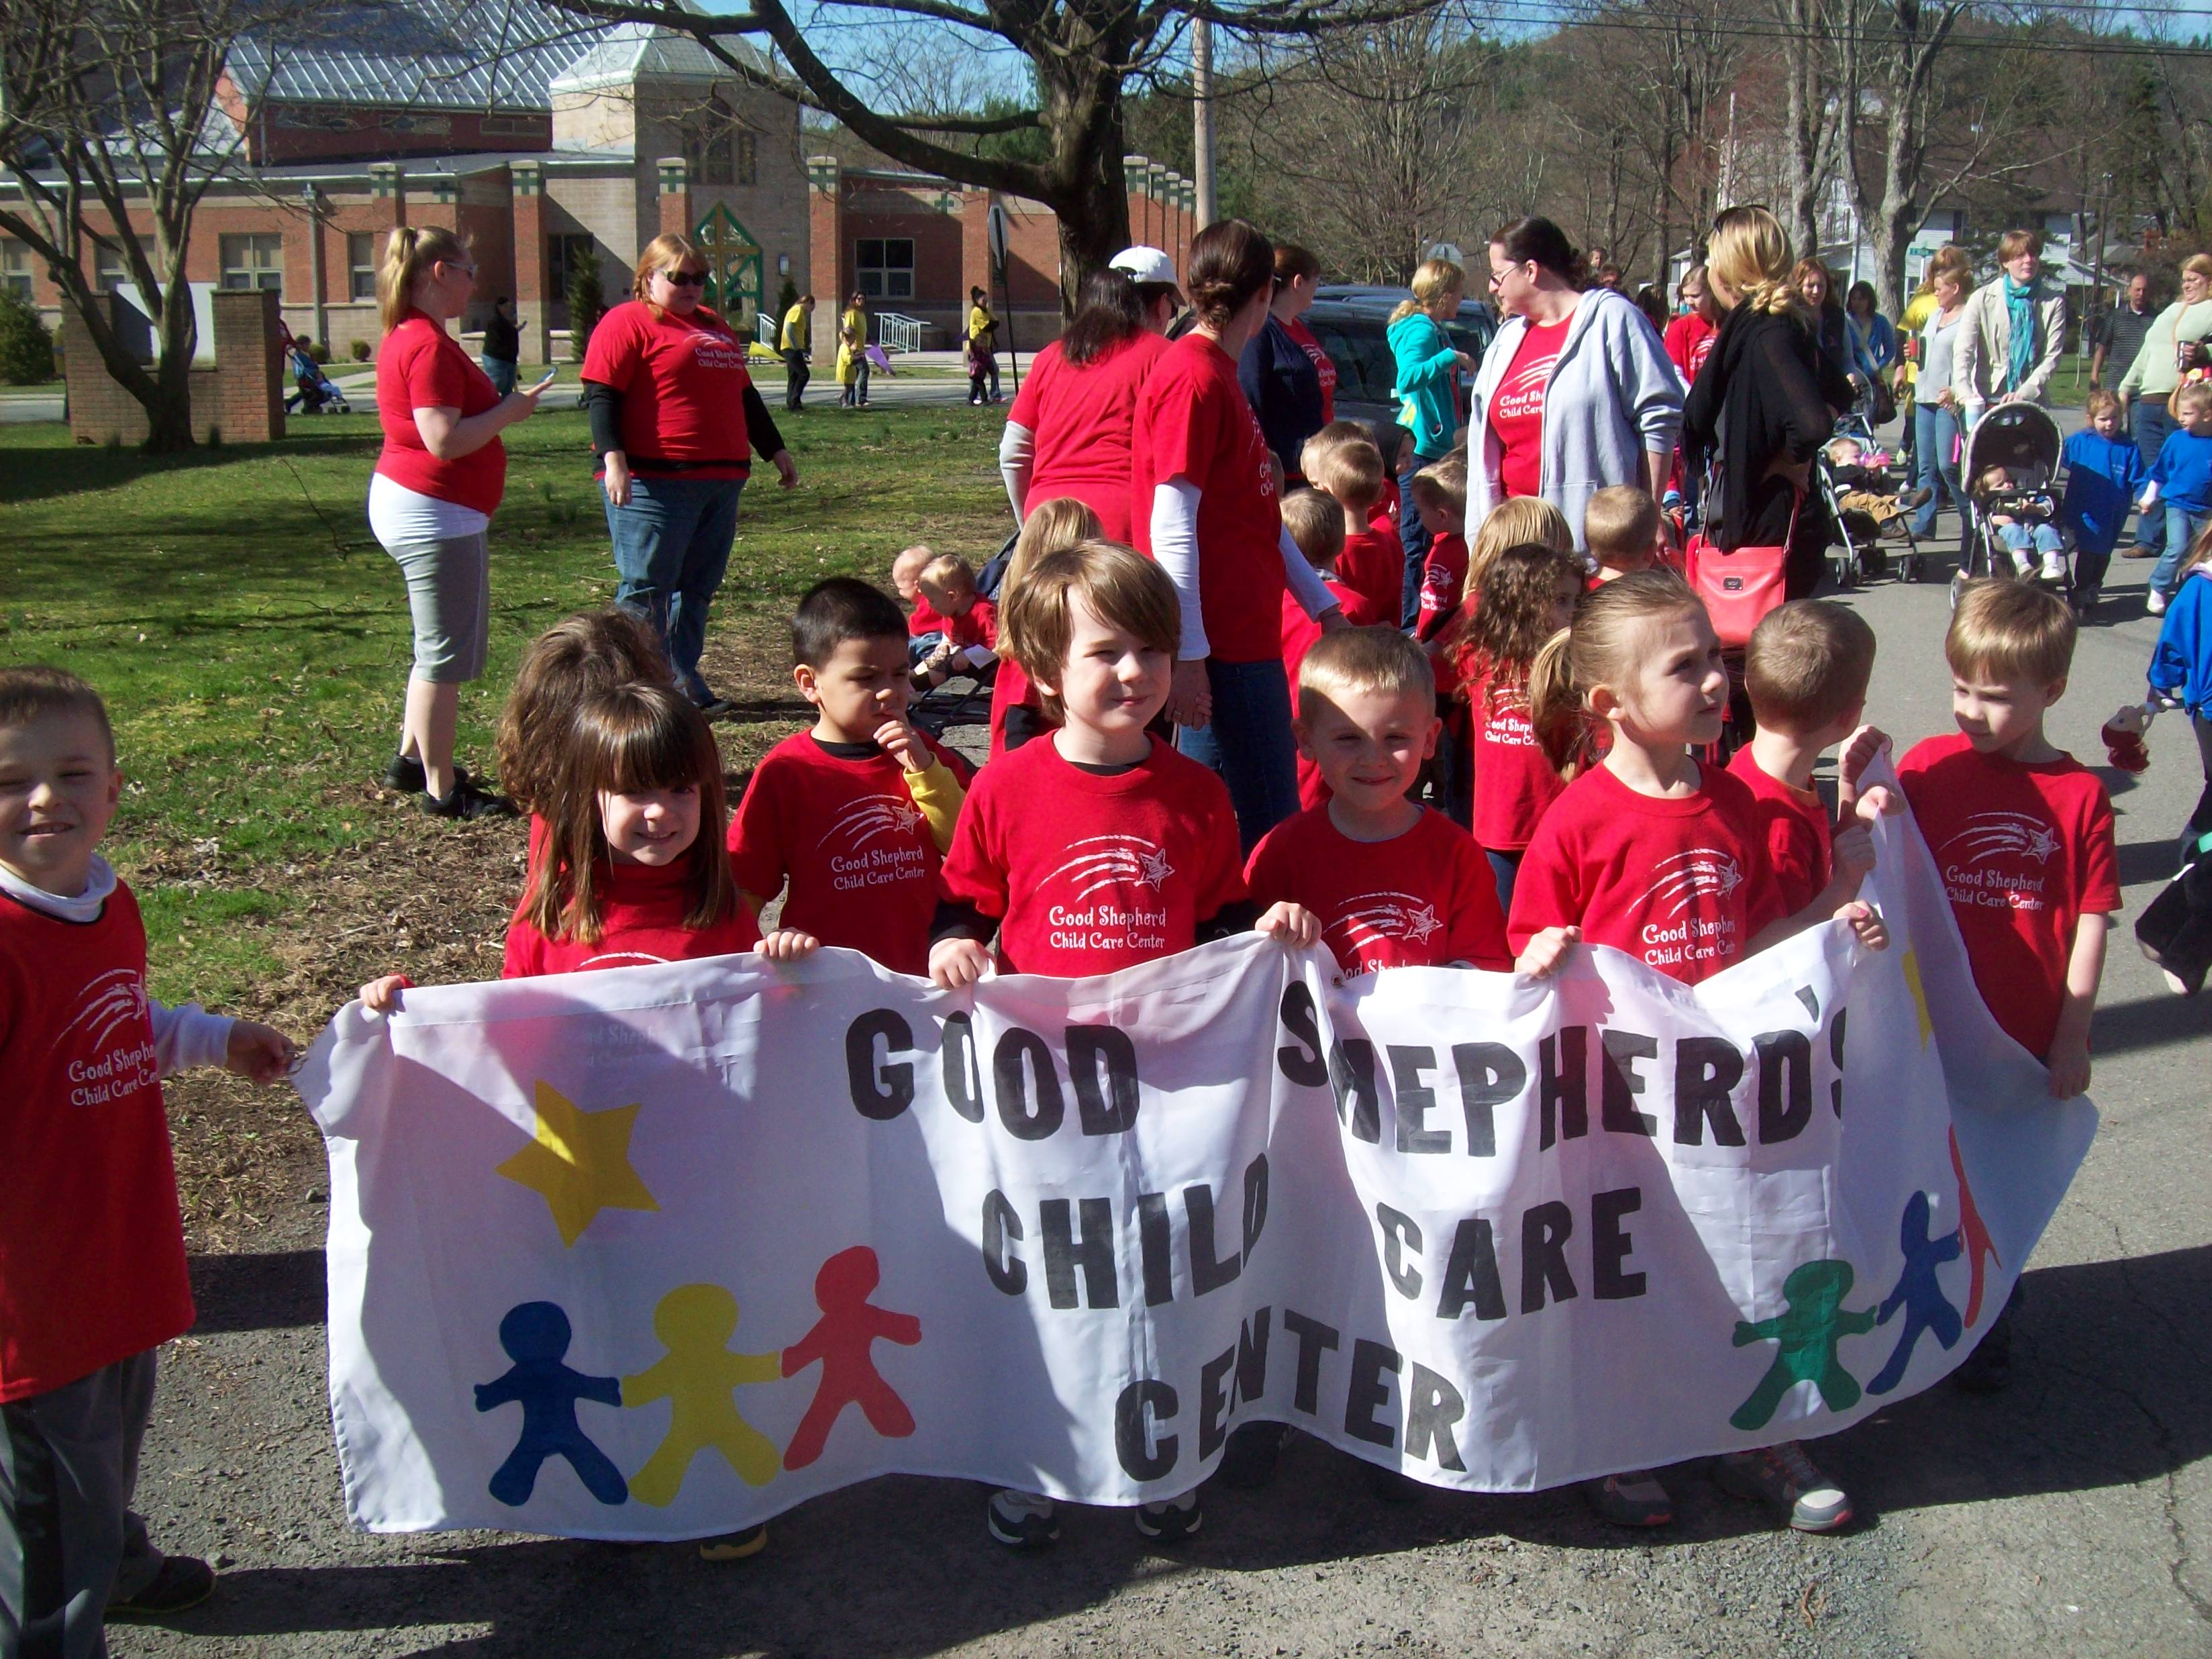 February 2016 Child Care Provider of the Month – Good Shepherd Child Care Center, Inc.